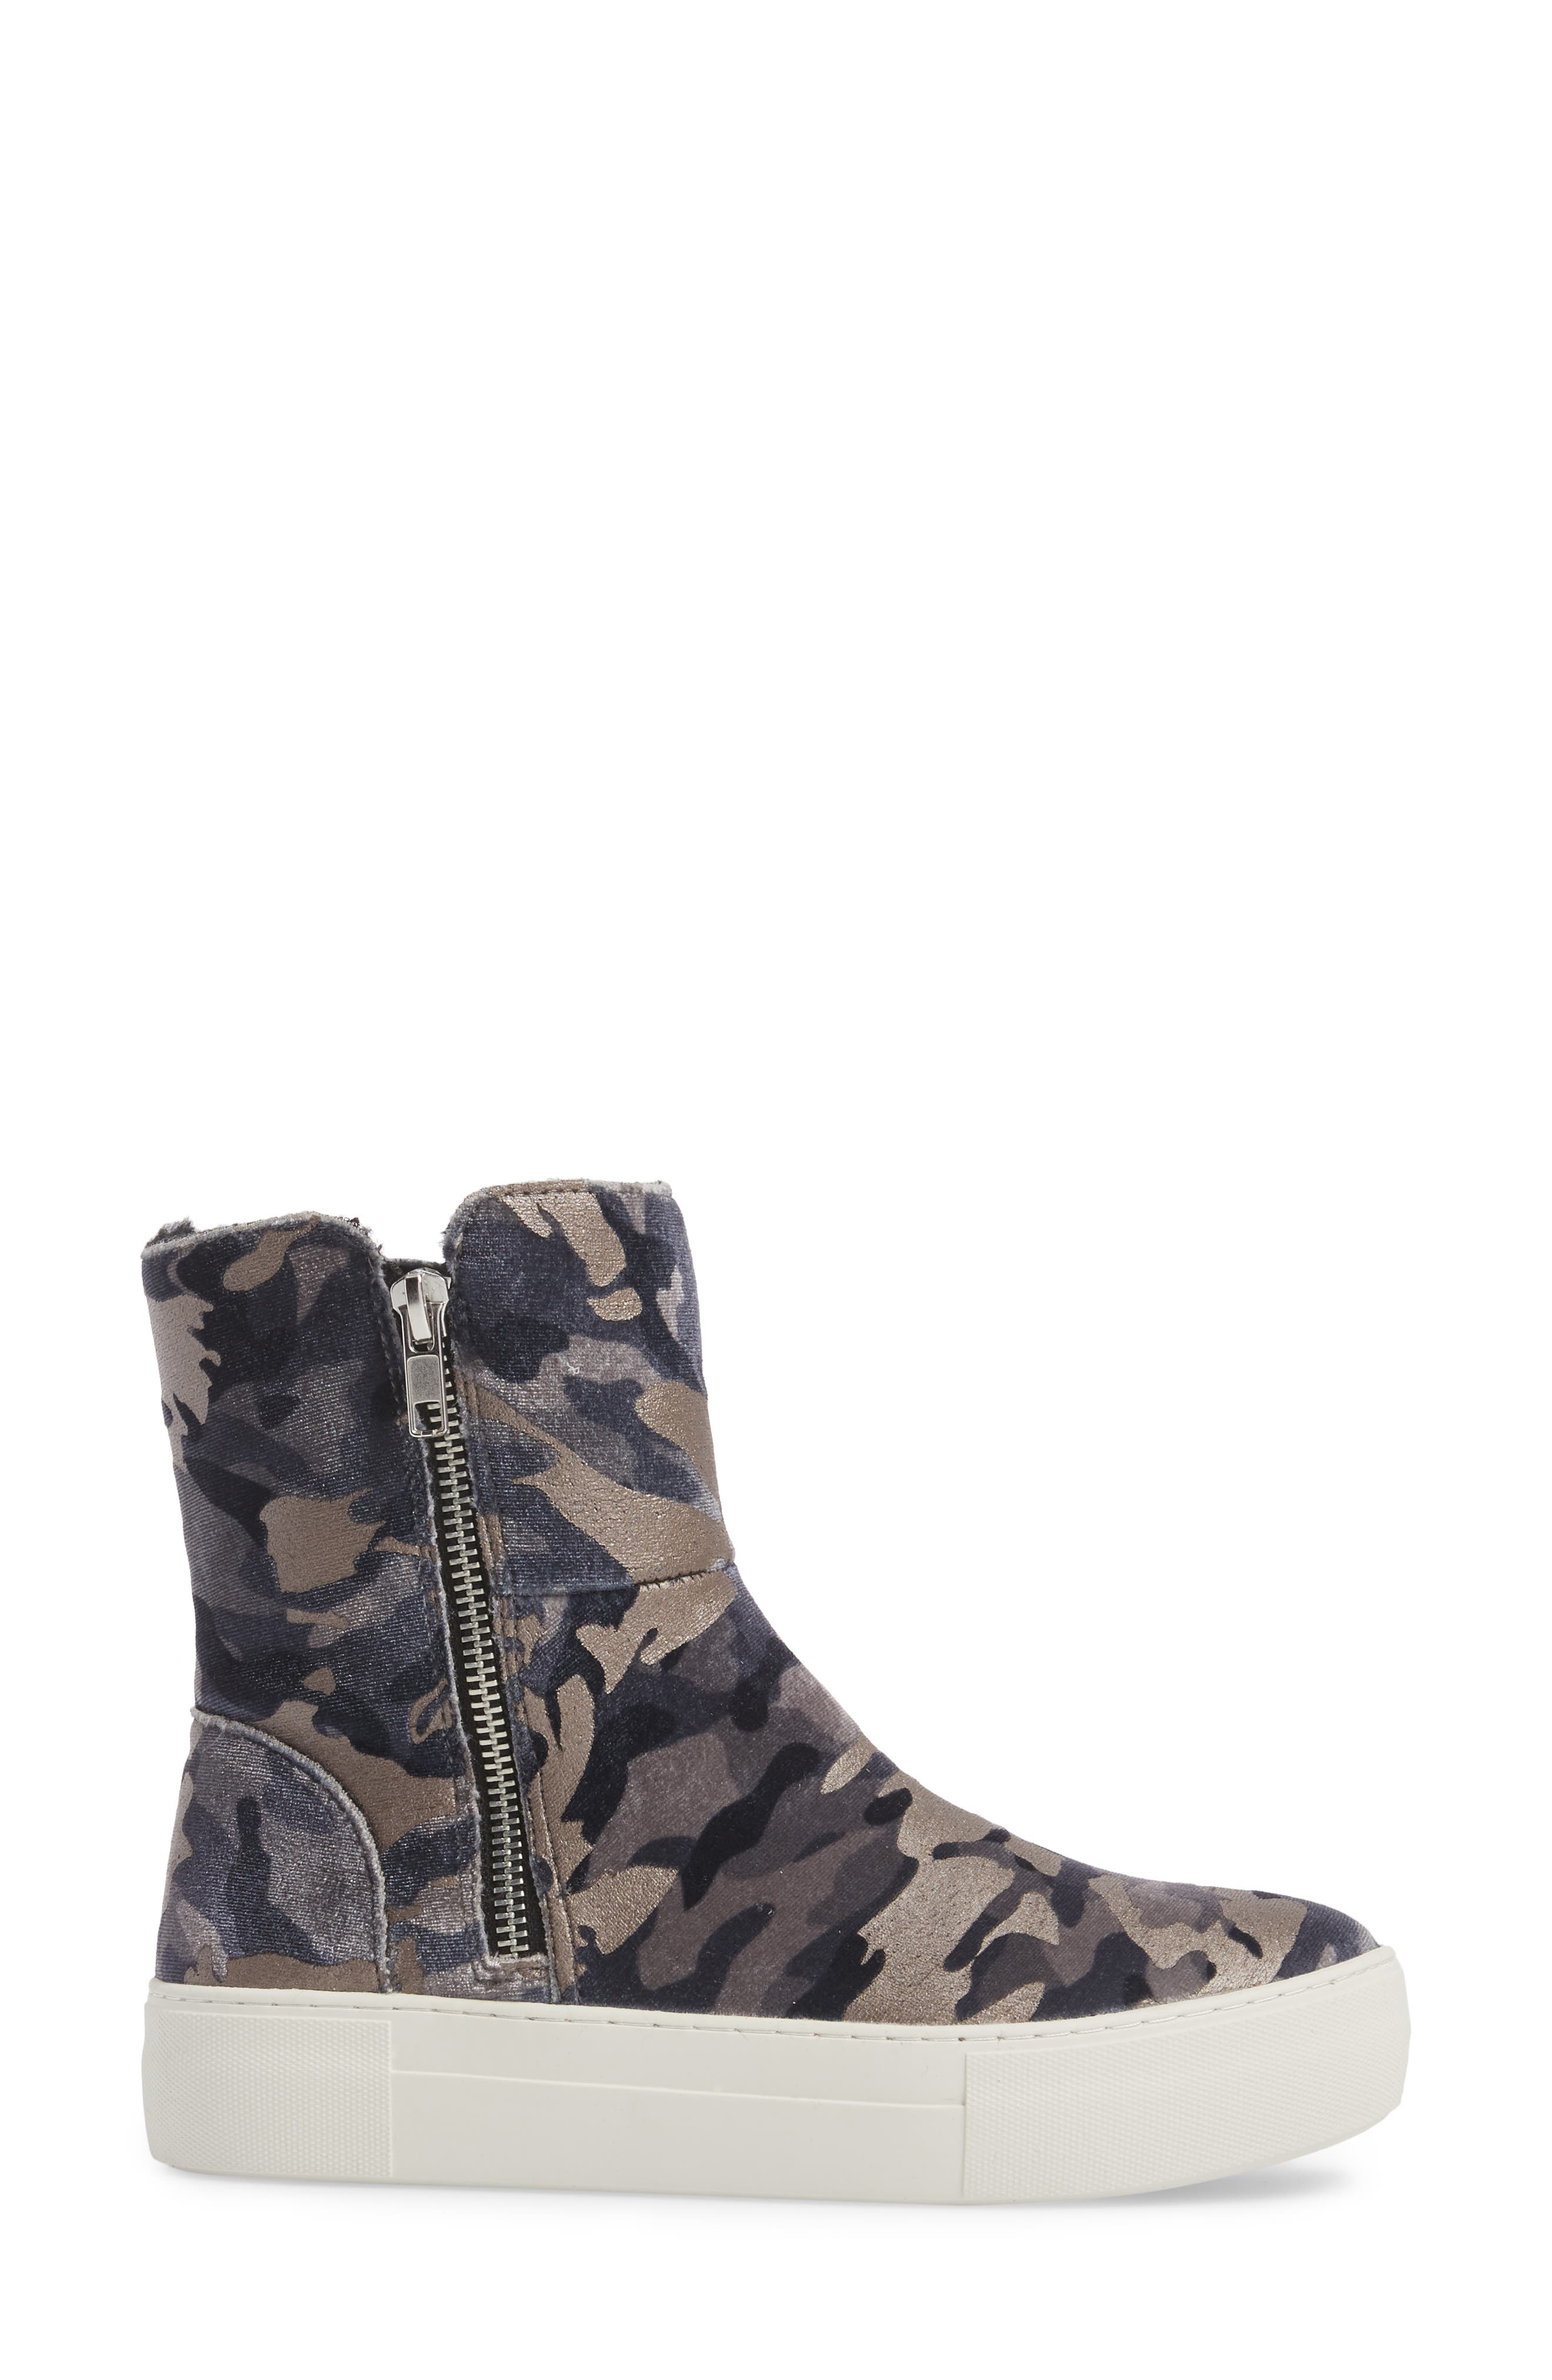 Garrson Sneaker Boot,                             Alternate thumbnail 3, color,                             Camouflage